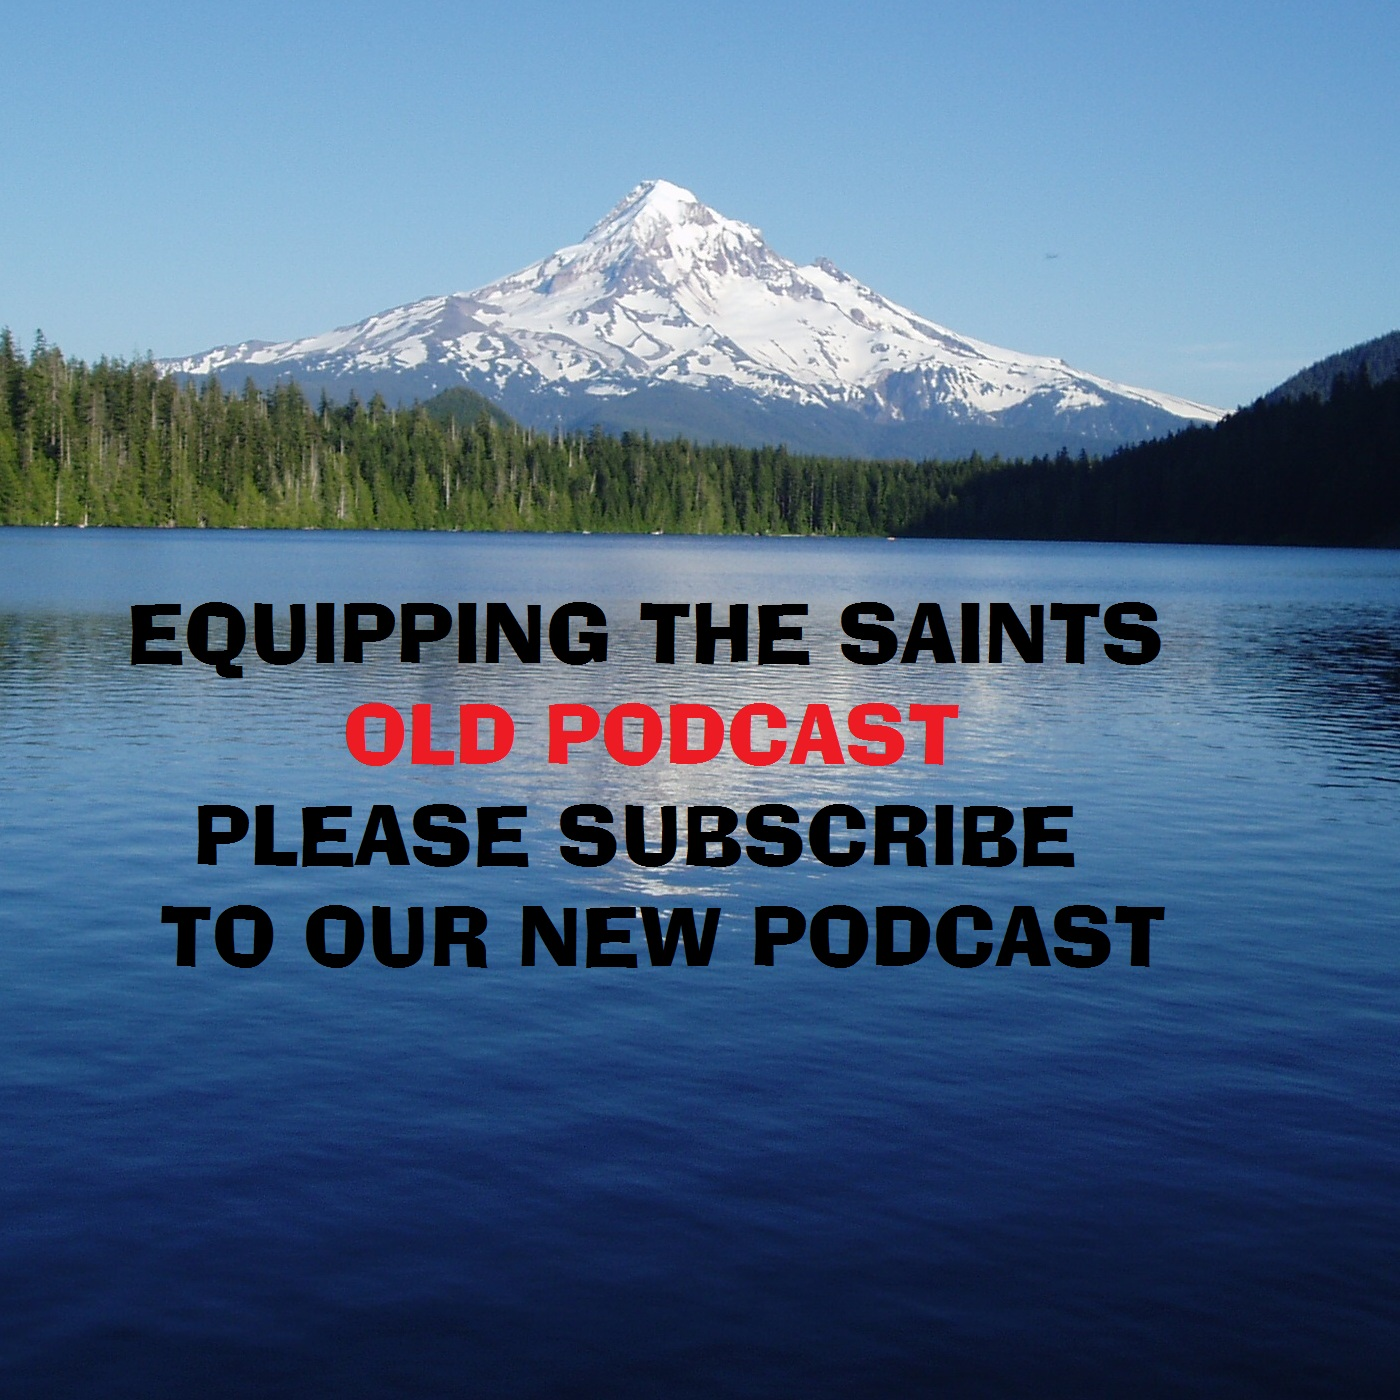 Equipping the Saints OLD PODCAST - PLEASE SUBSCRIBE TO OUR NEW PODCAST